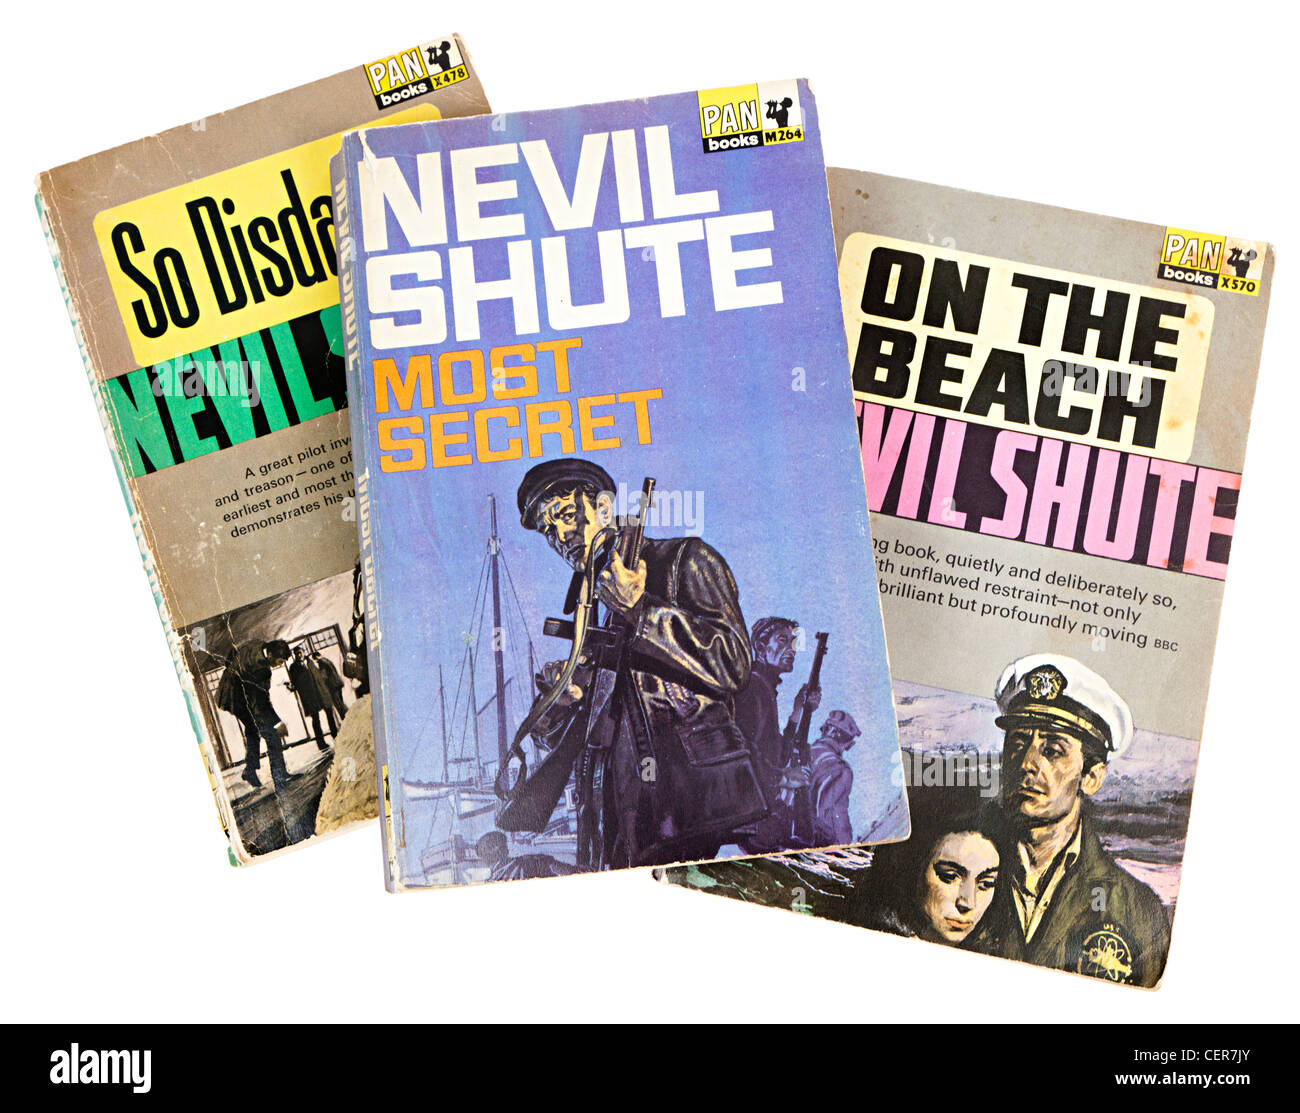 Paperback books by Nevil Shute published by Pan - Stock Image